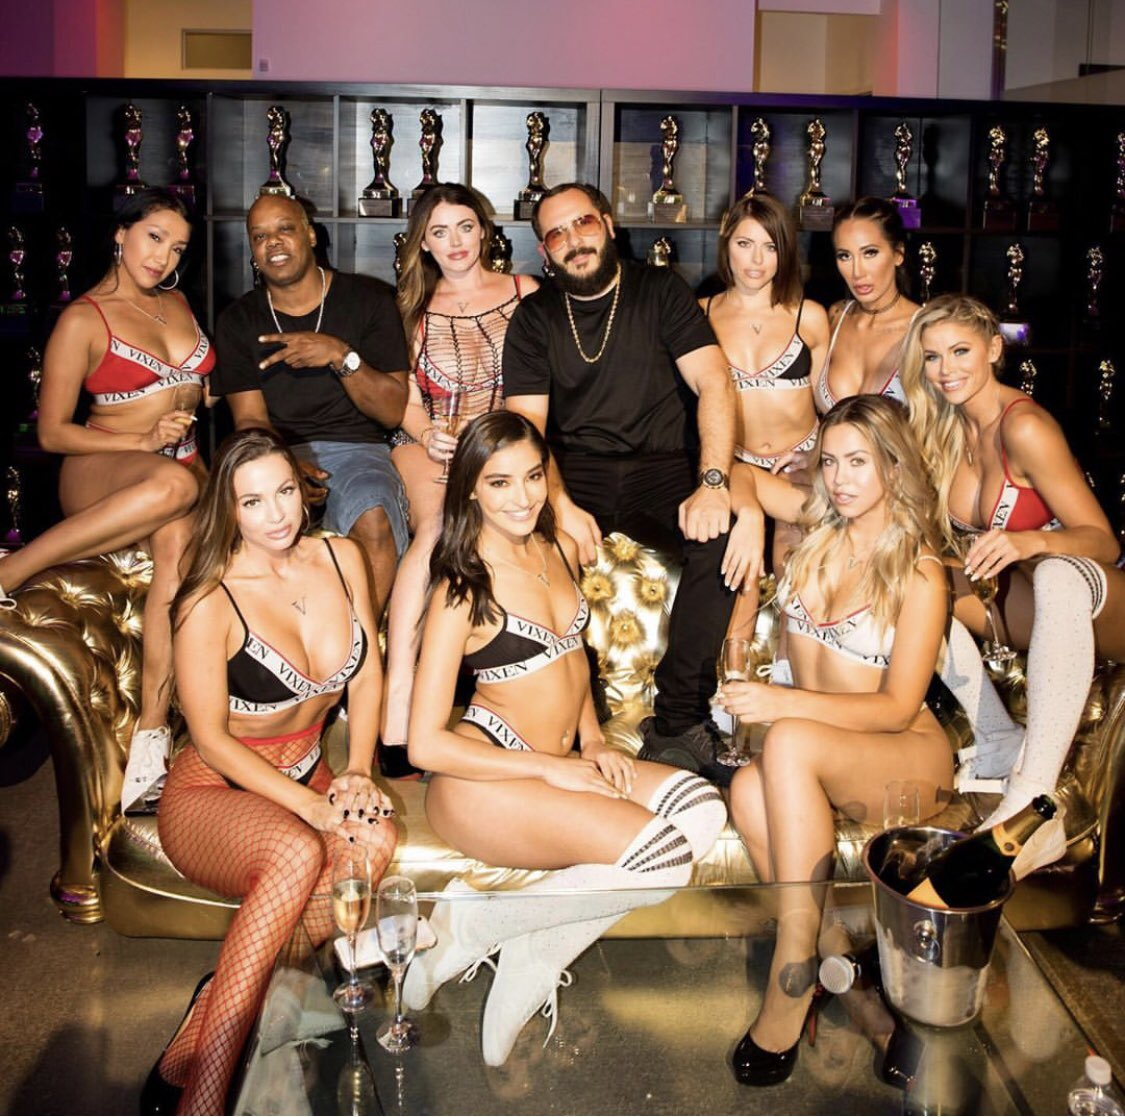 Love this beautiful group of people- congrats to miss @emilywillisxoxo for joining the @VIXEN Angel family!! ❤️😍🎉 @GregLansky